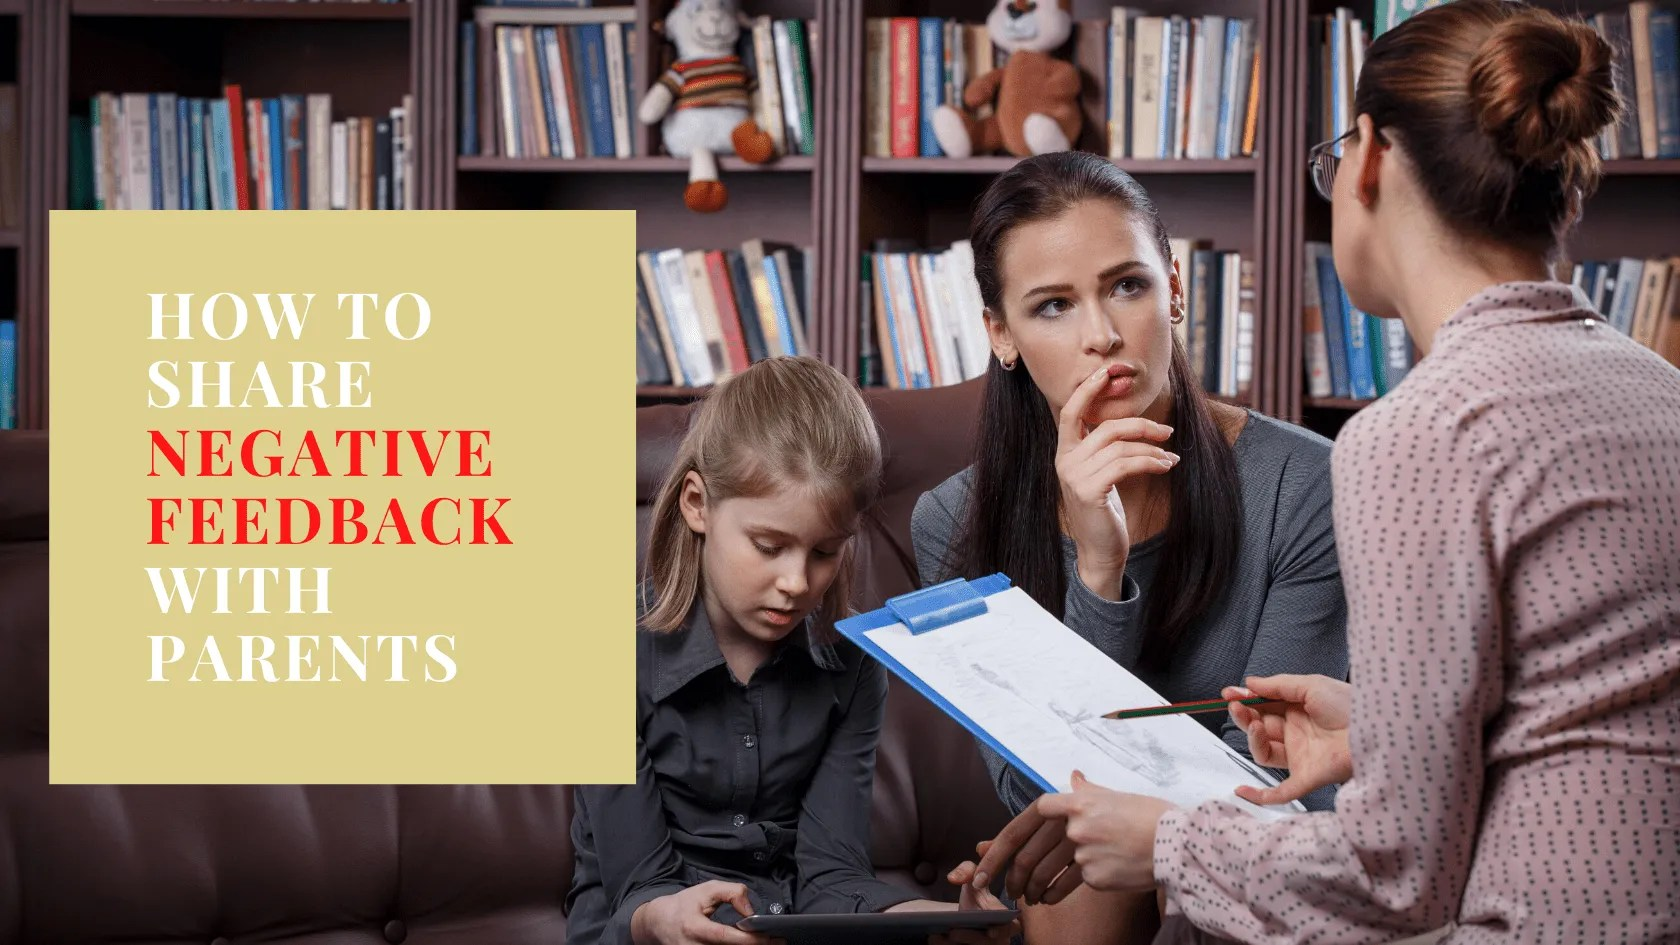 5 Ways How to Share Negative Feedback with Parents